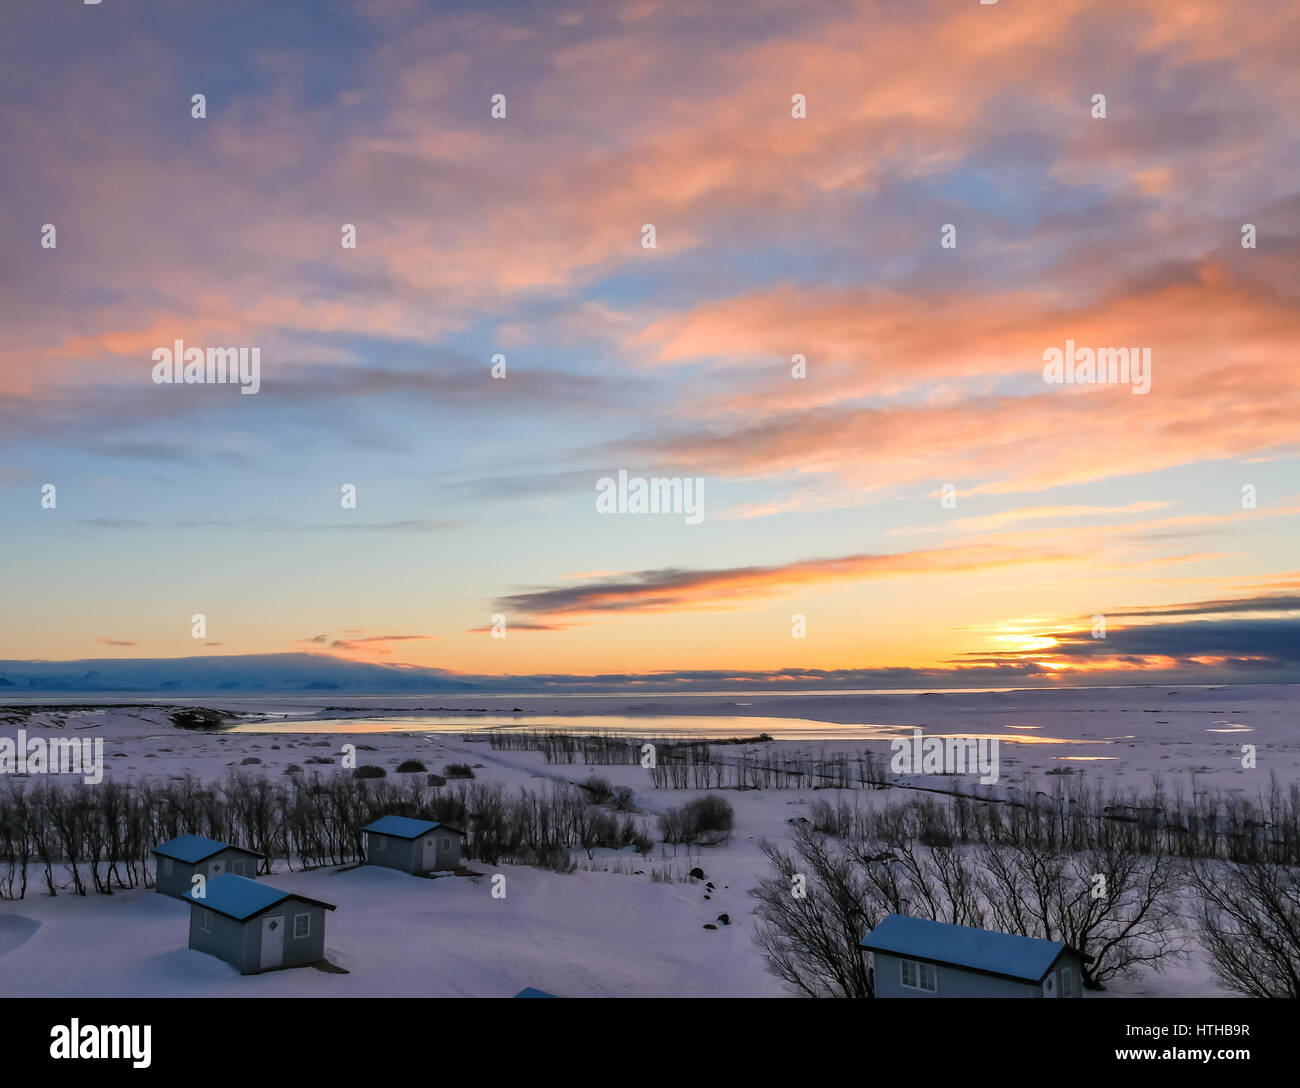 Colourful sunrise on a low horizon in winter in Iceland, with bungalow chalets in foreground - Stock Image